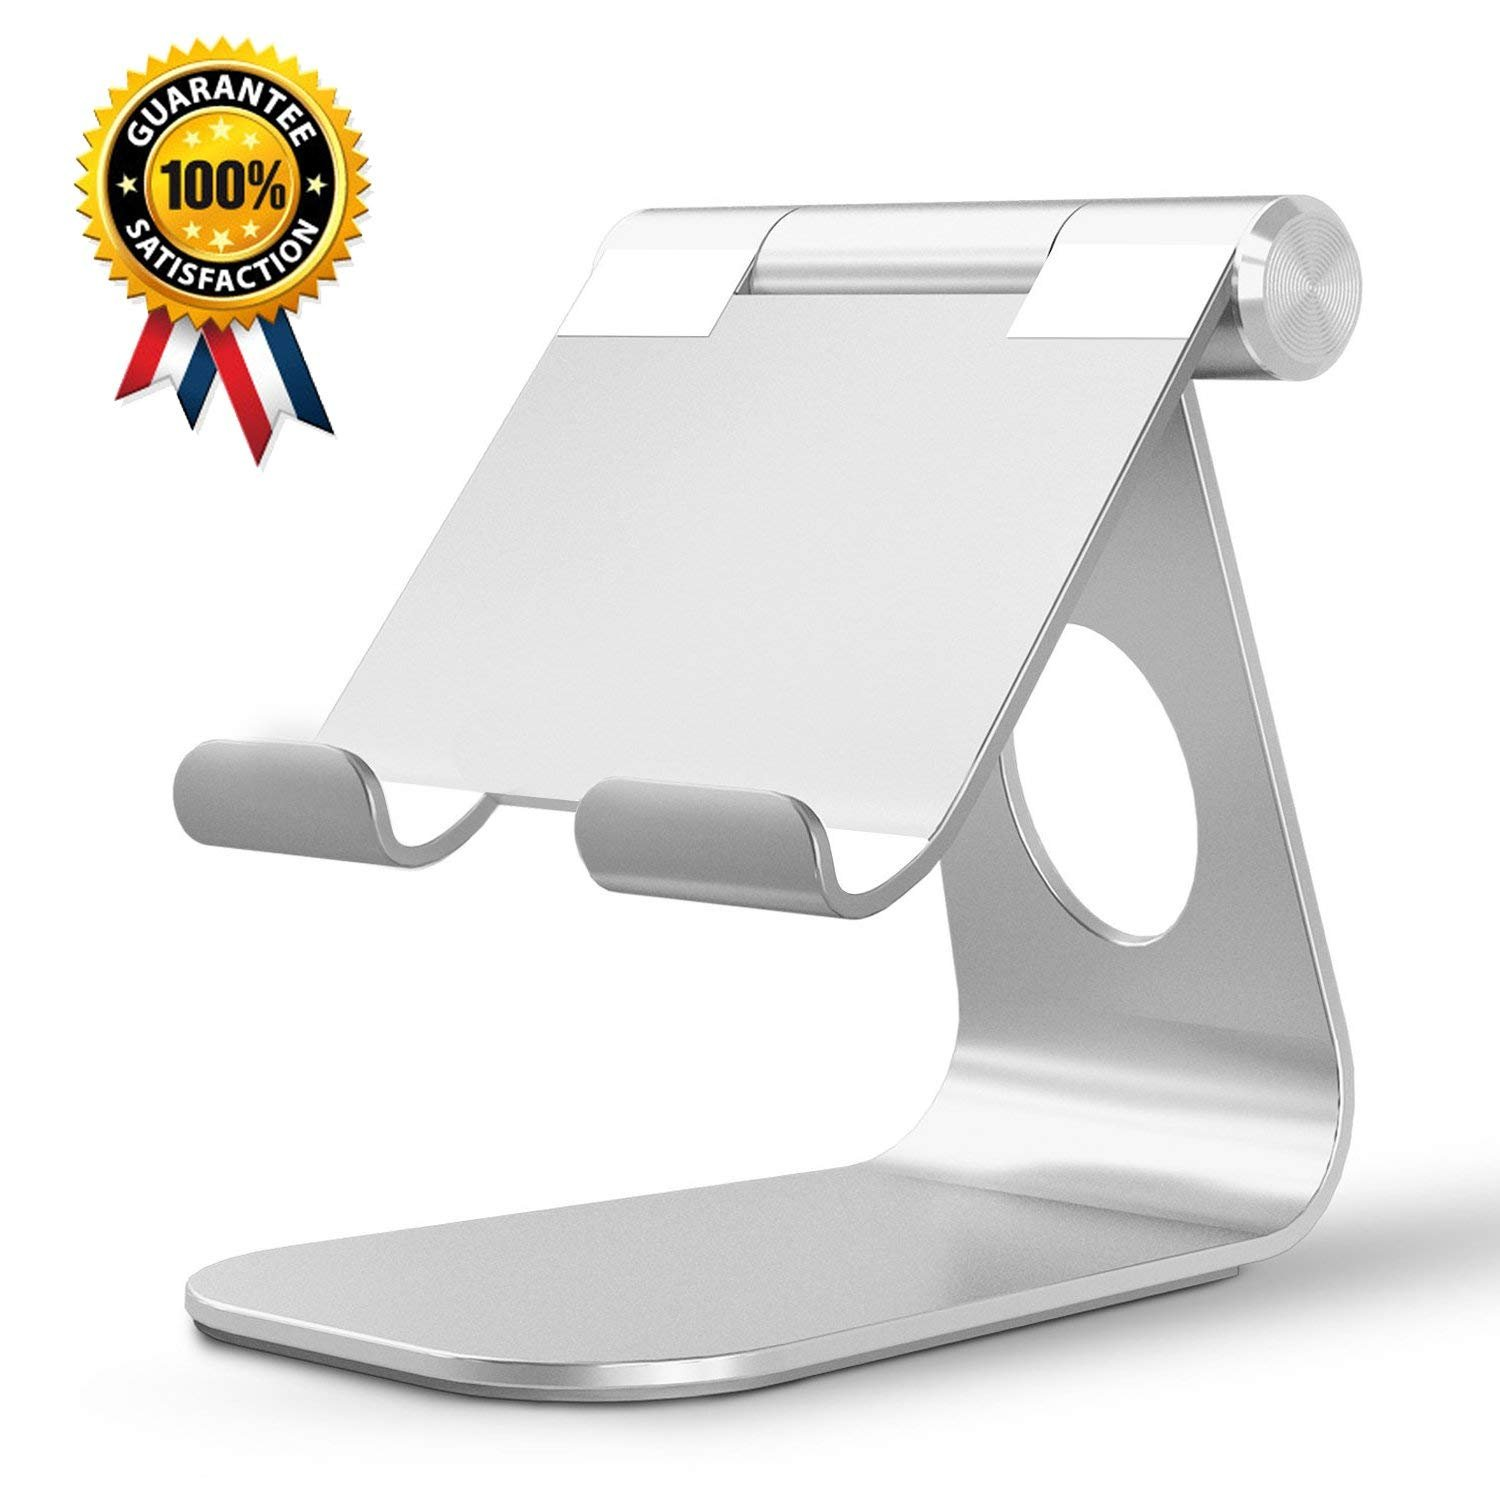 SUPRBIRD Tablet Stands Adjustable Aluminum Cell Phone Stand Stable Base and Convenient Charging Port for iPad, Smart Phones, E-readers and Tablets (4-13 inch) - Silver